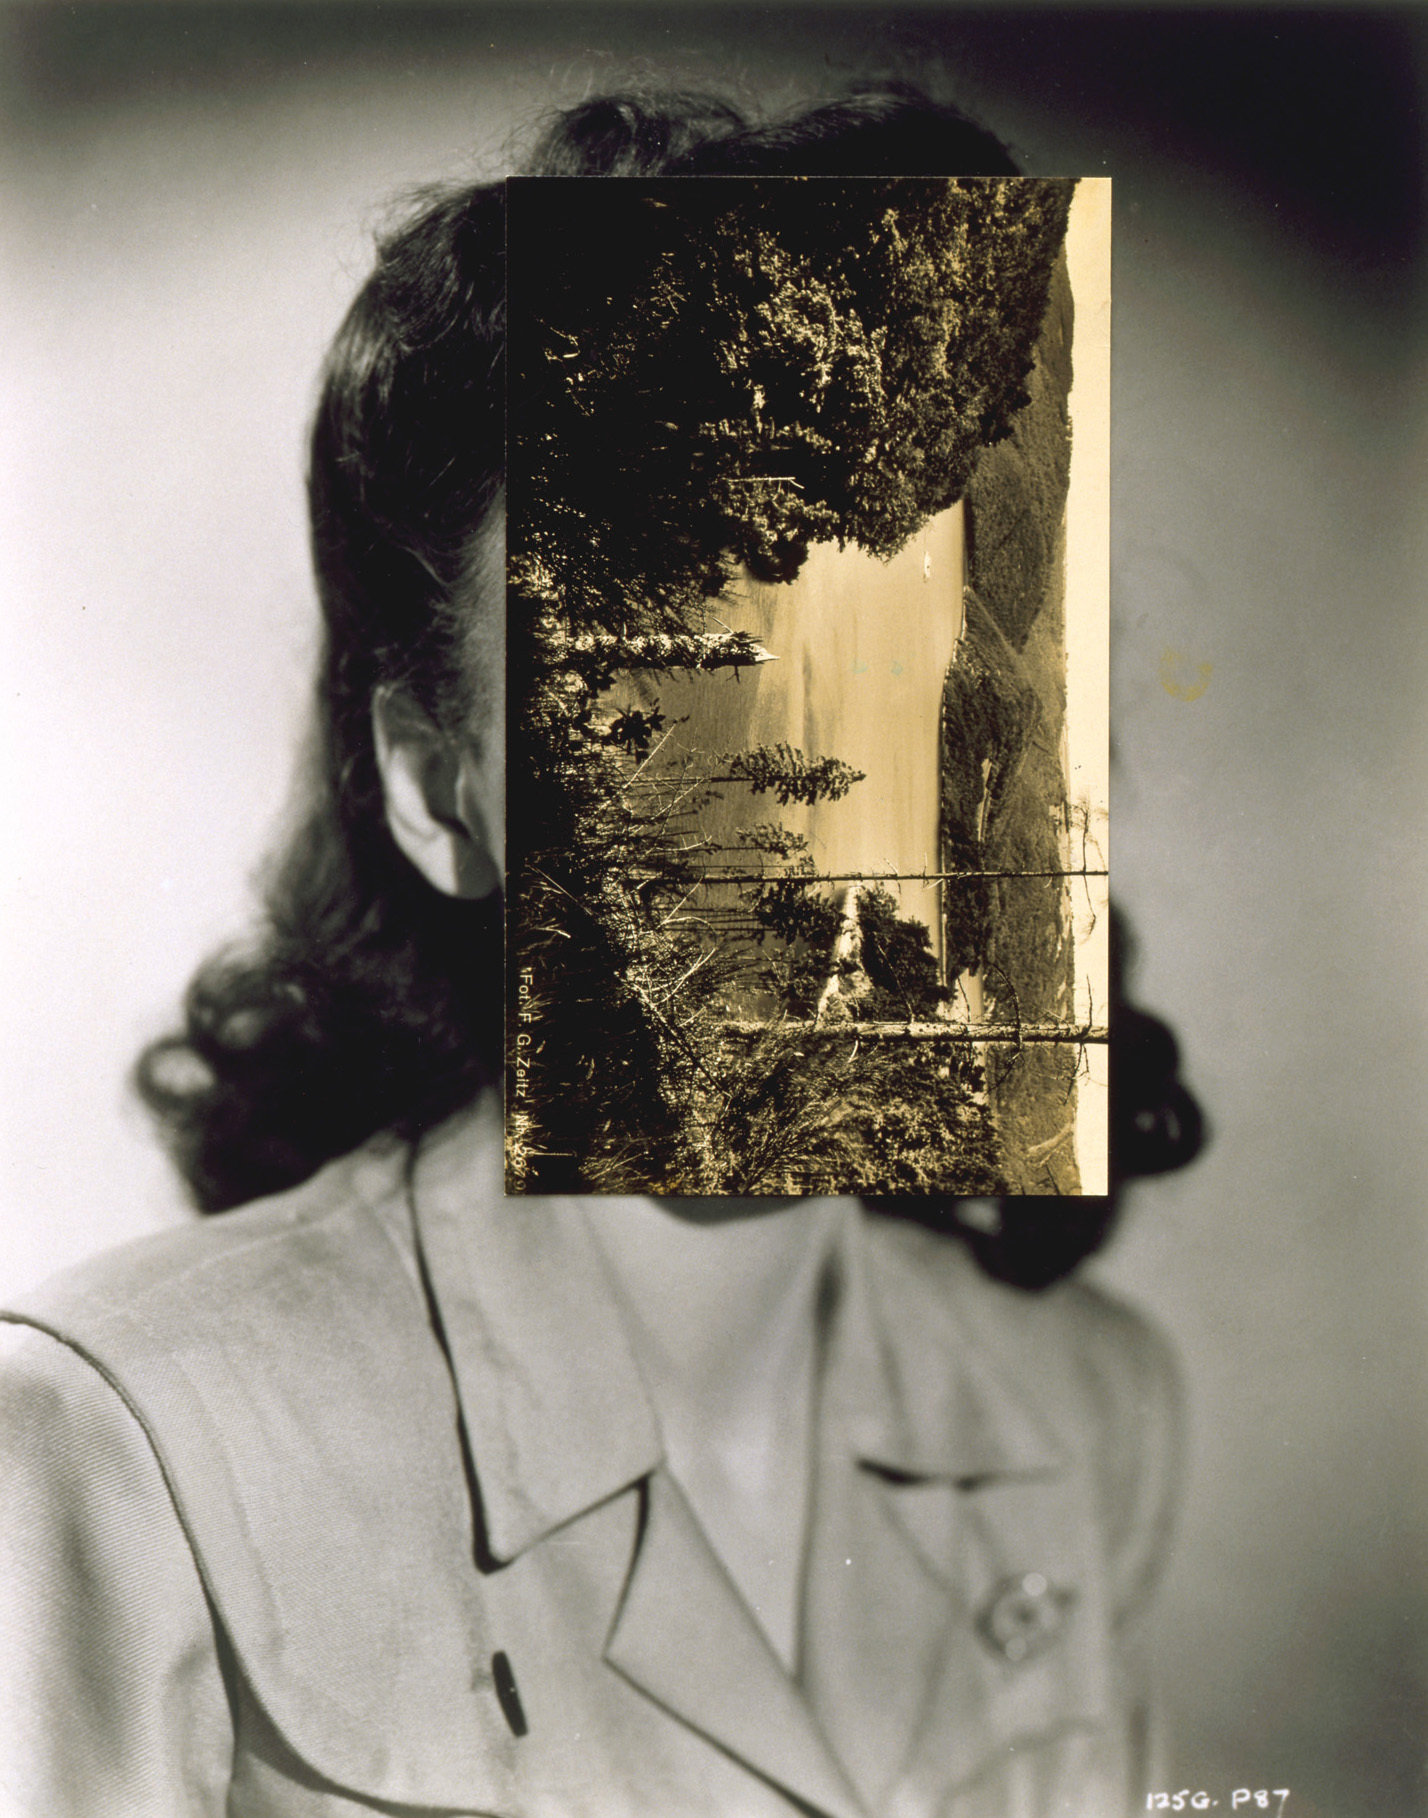 'Mask XXVI' by John Stezaker, 2006. Courtesy of the Museum of Modern Art.